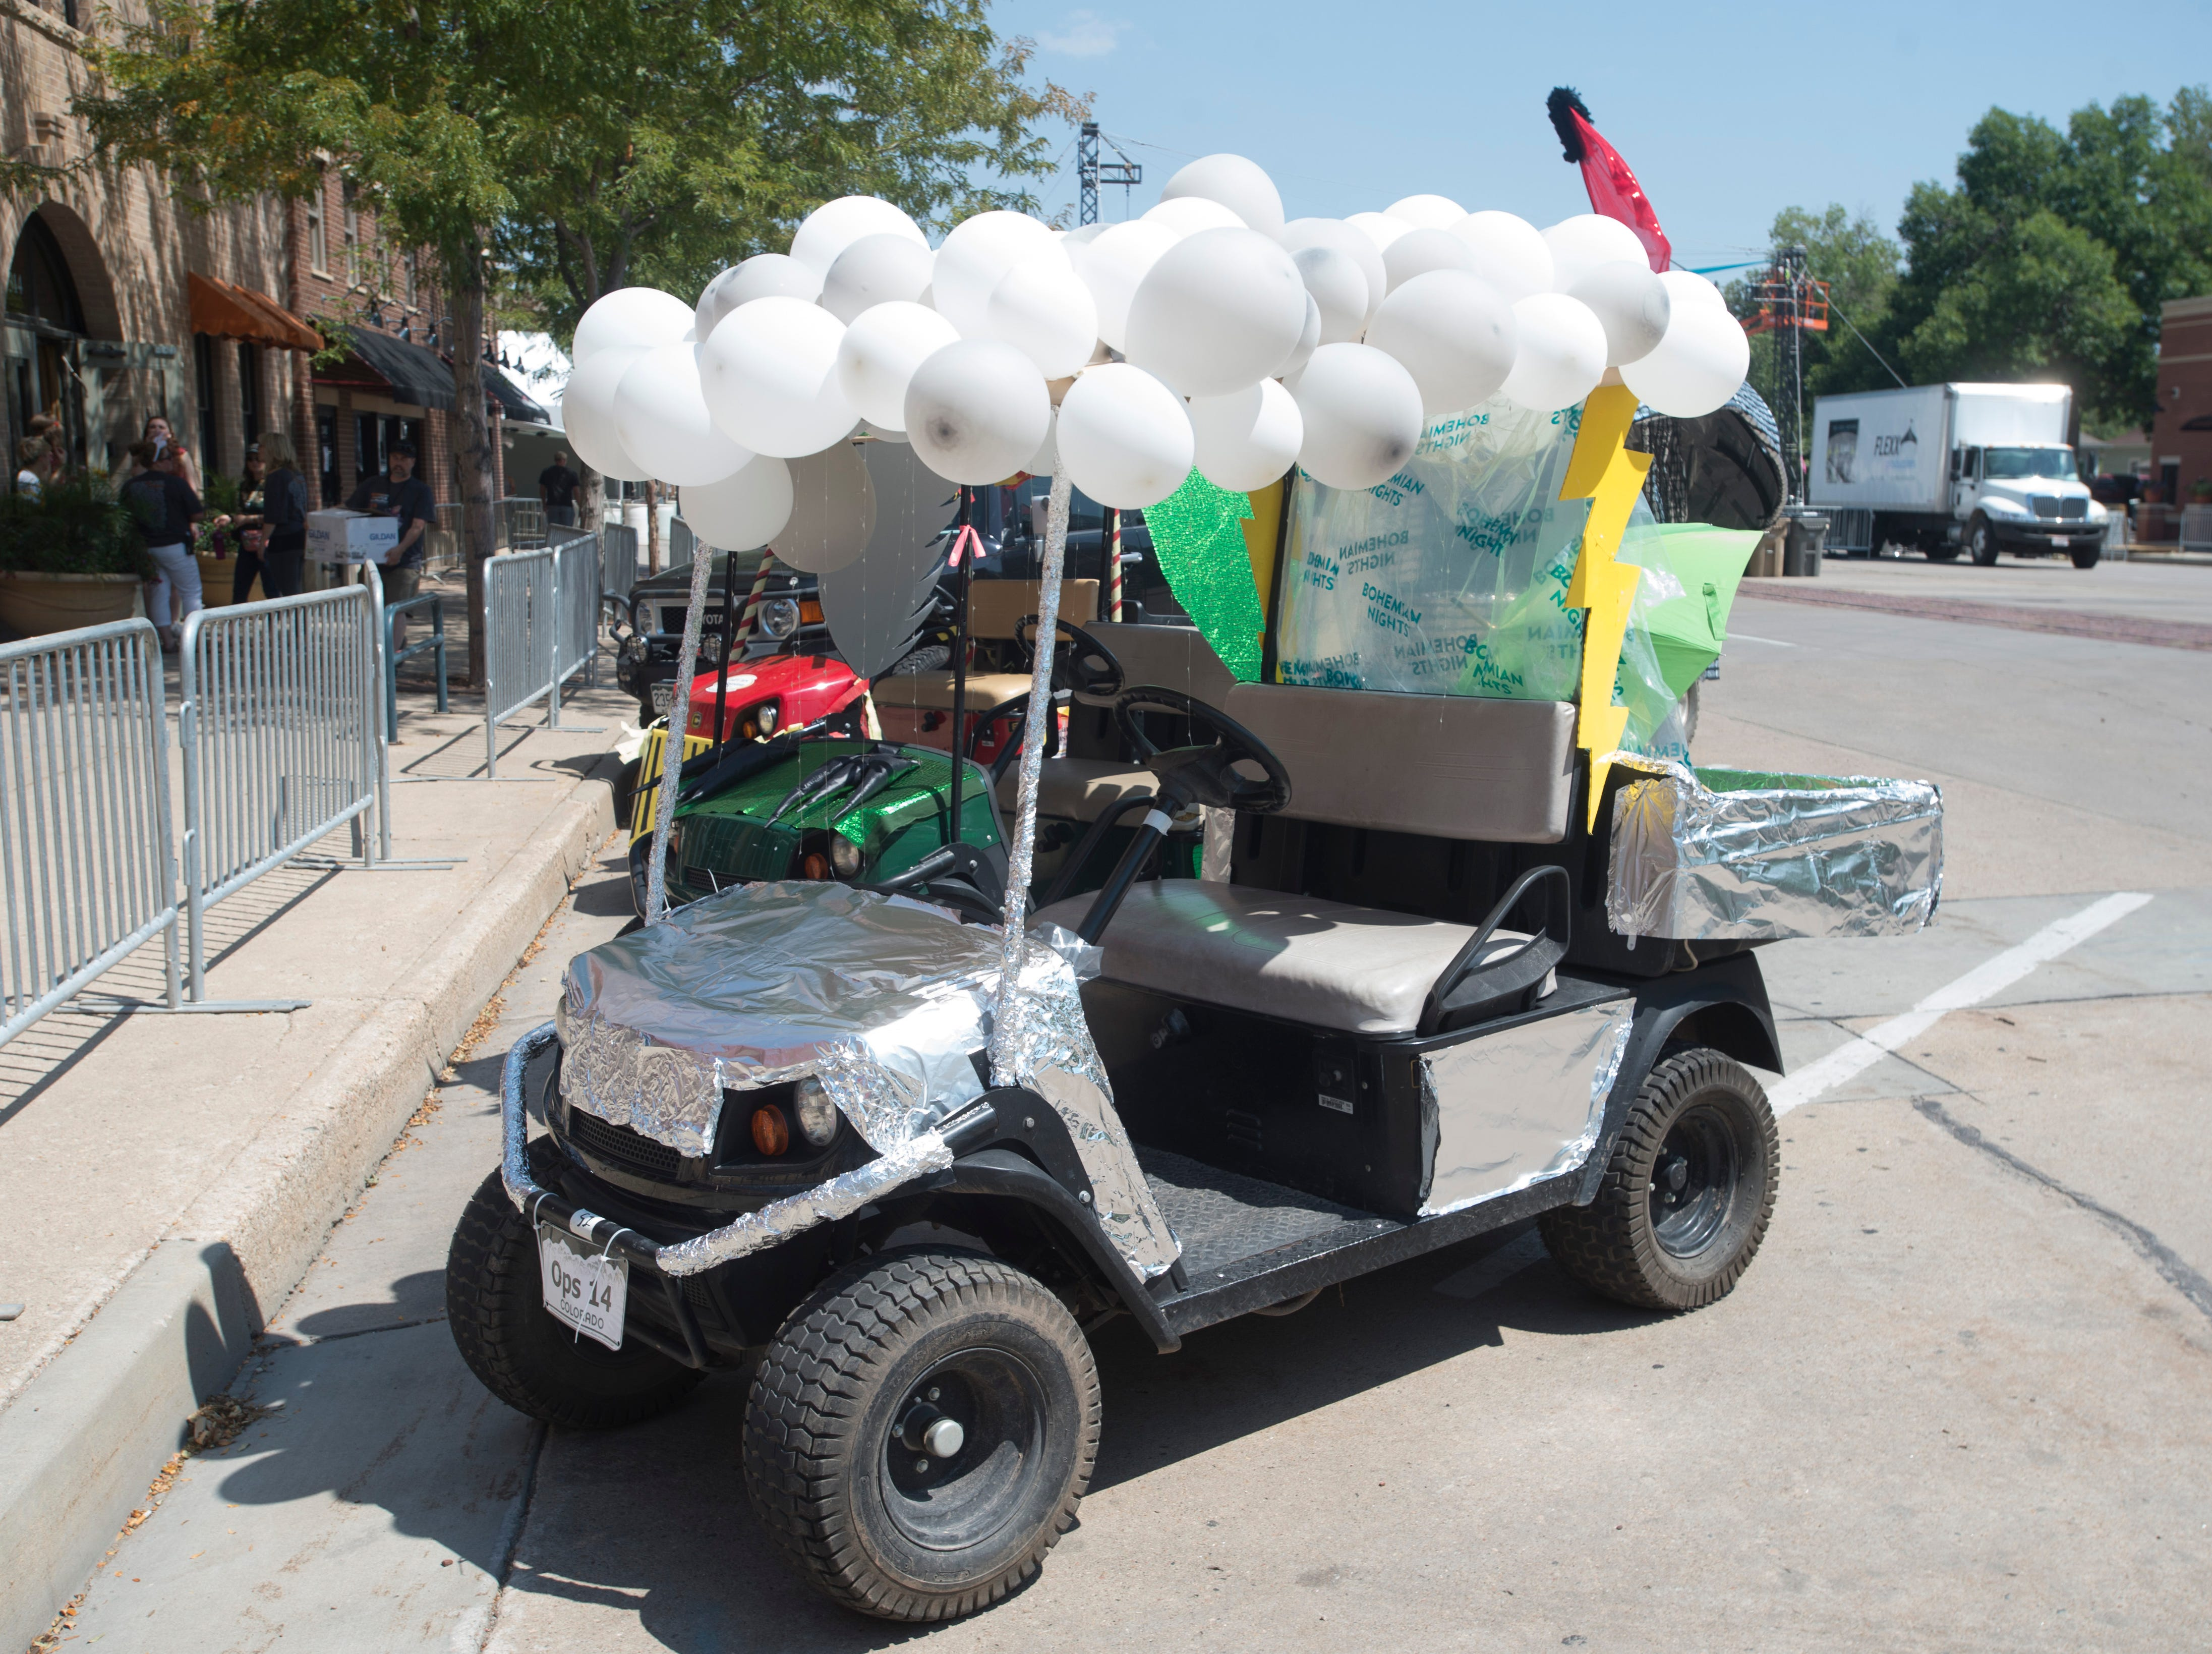 Golf Cart 3: Vote for your favorite NewWestFest decorated golf cart.